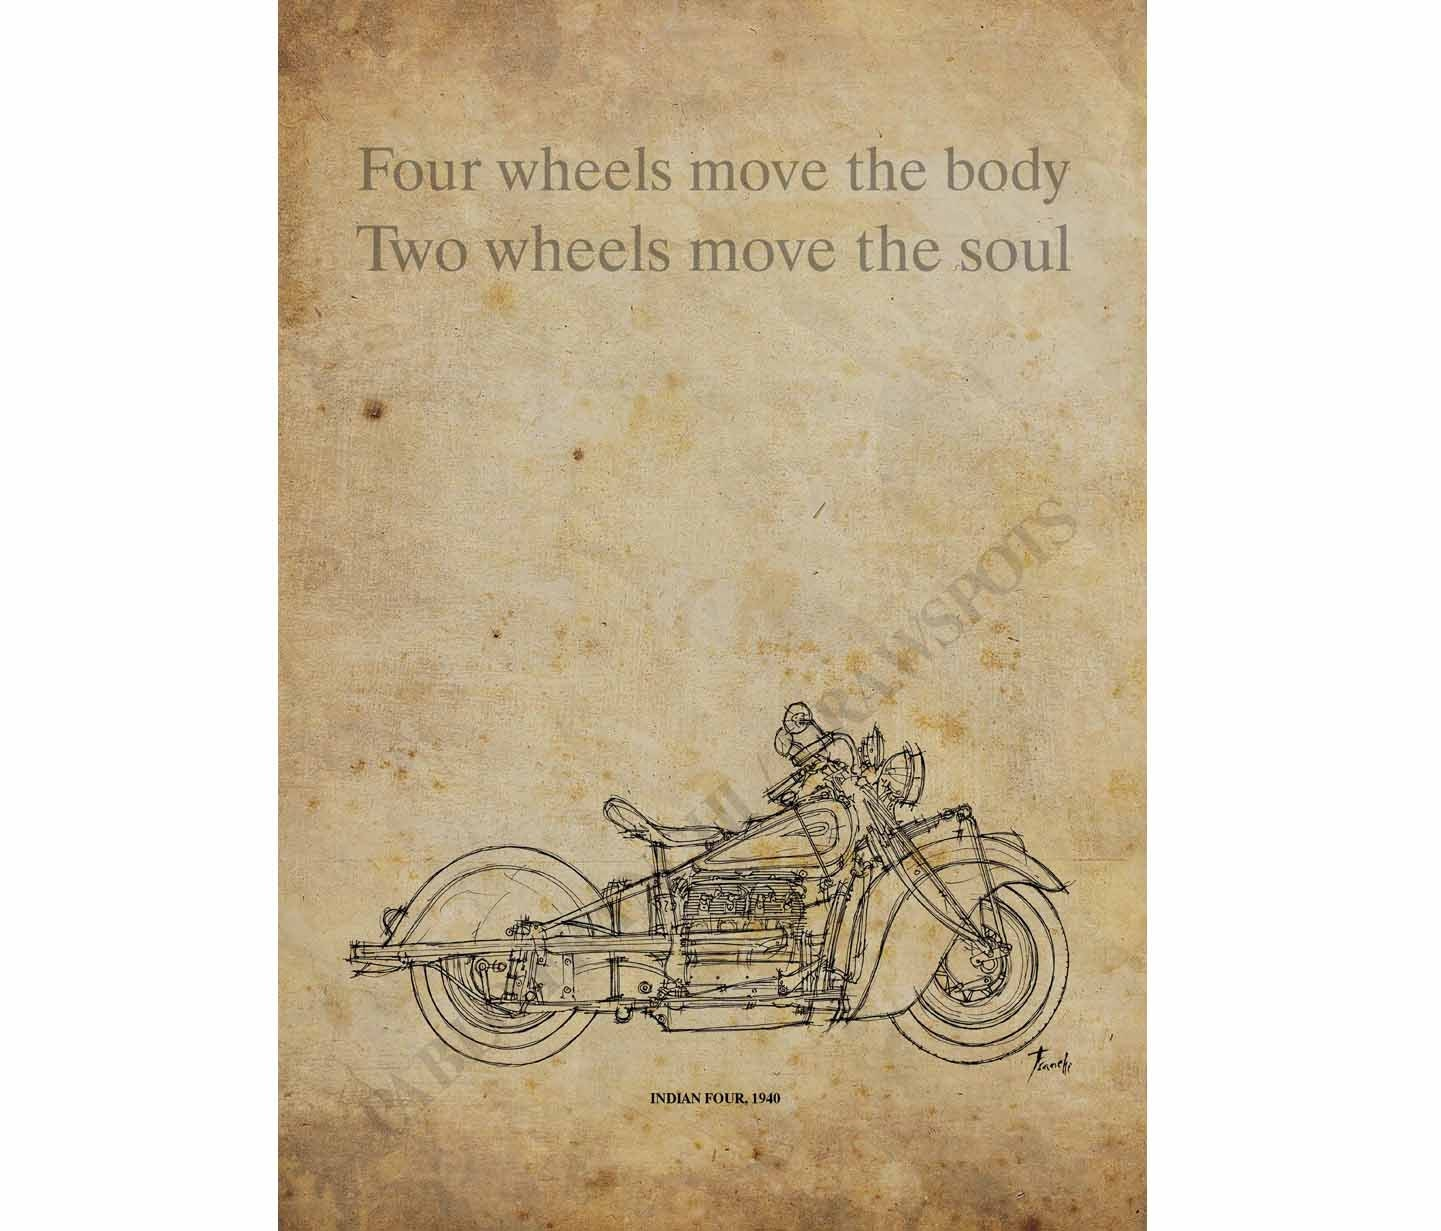 indian four 1940 custom quote four wheels move the body two wheels